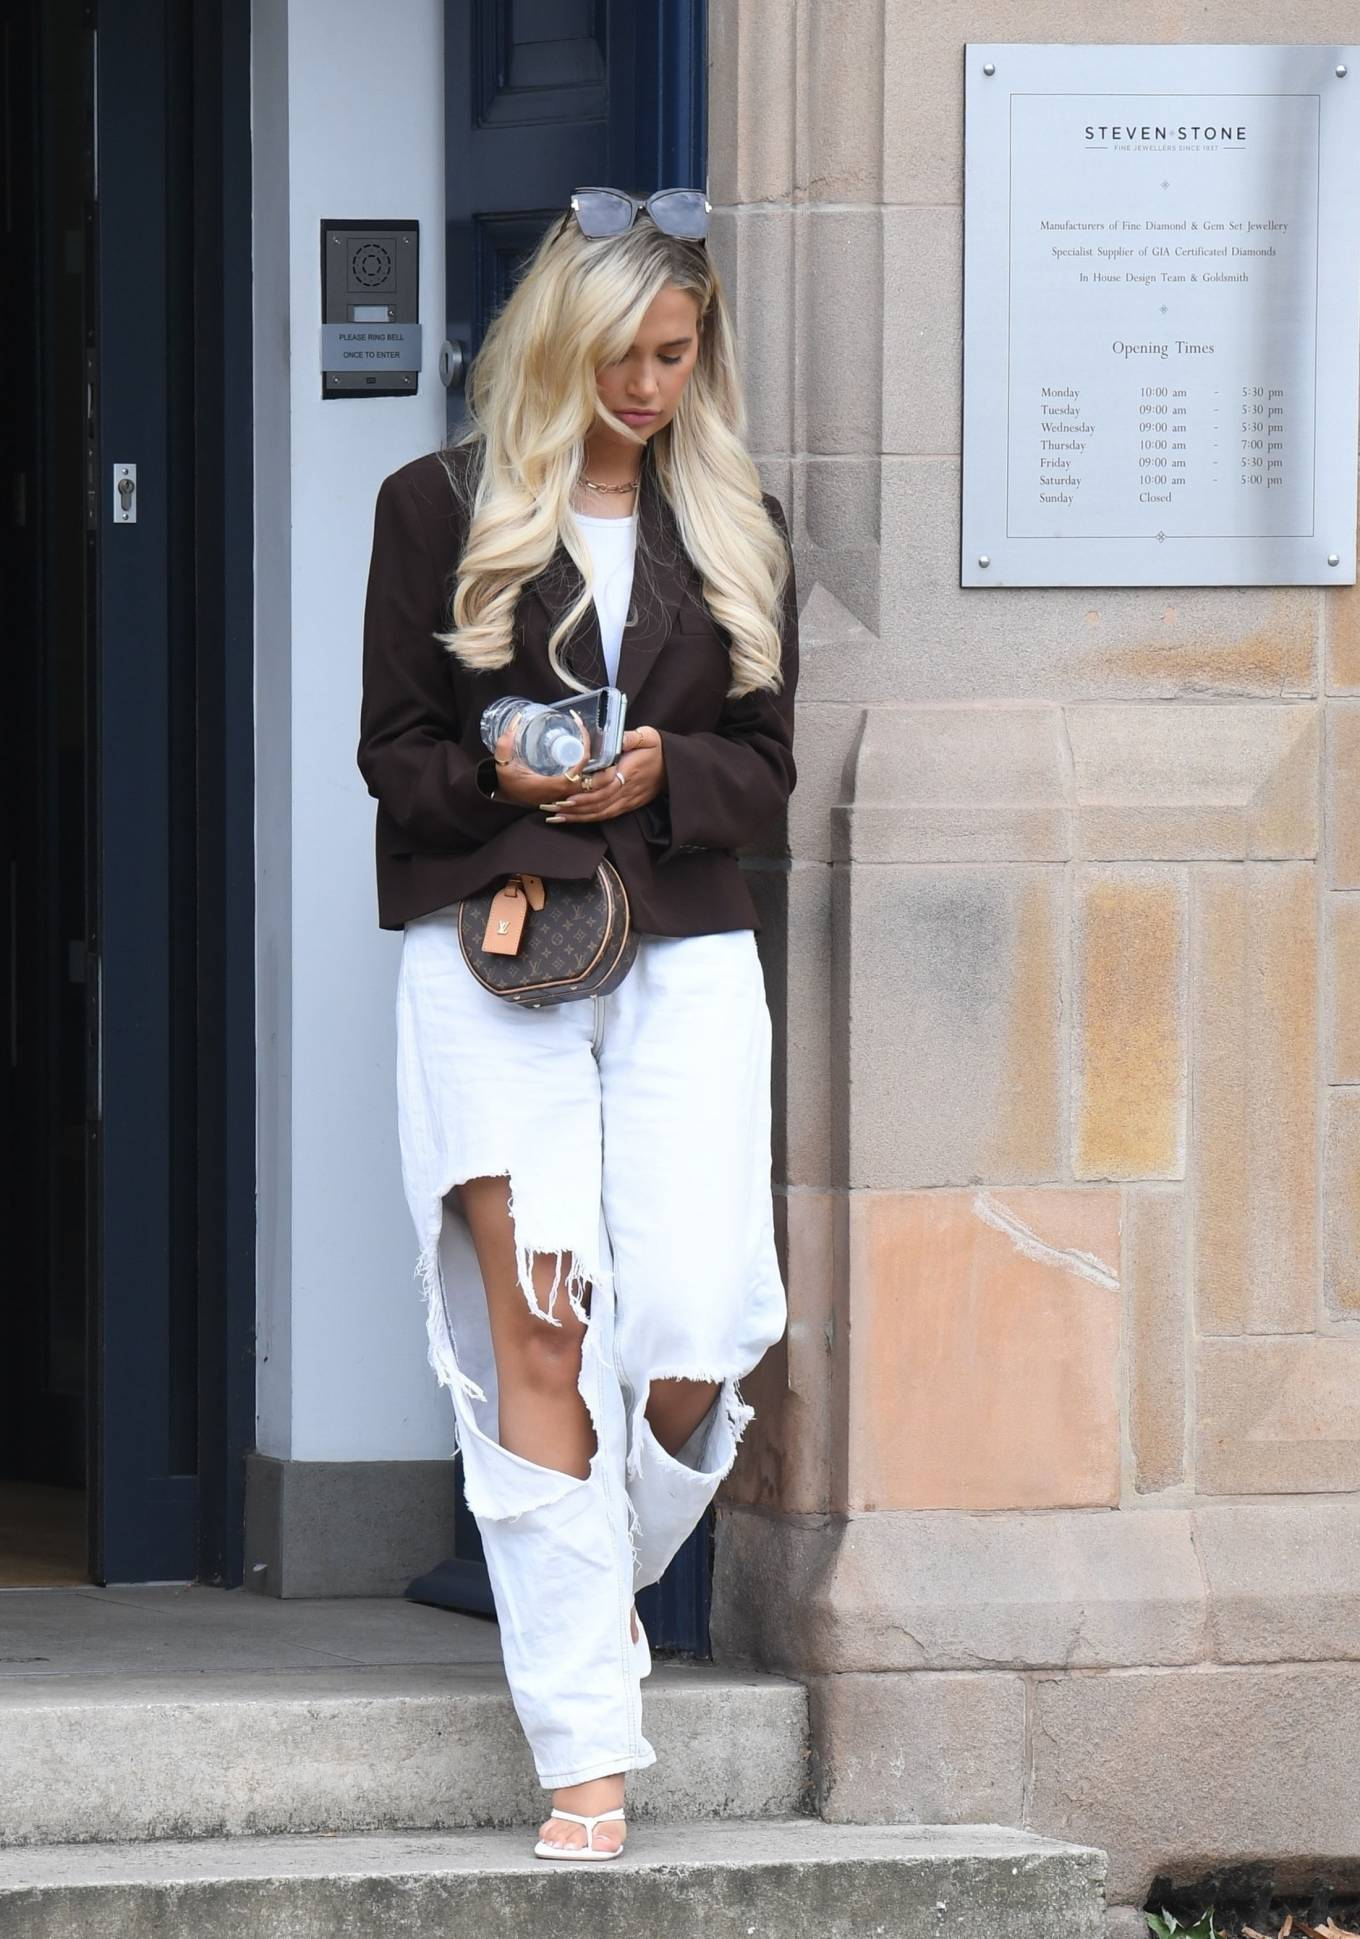 Molly-Mae Hague 2020 : Molly-Mae Hague and Tommy Fury – Seen while out in Cheshire -15